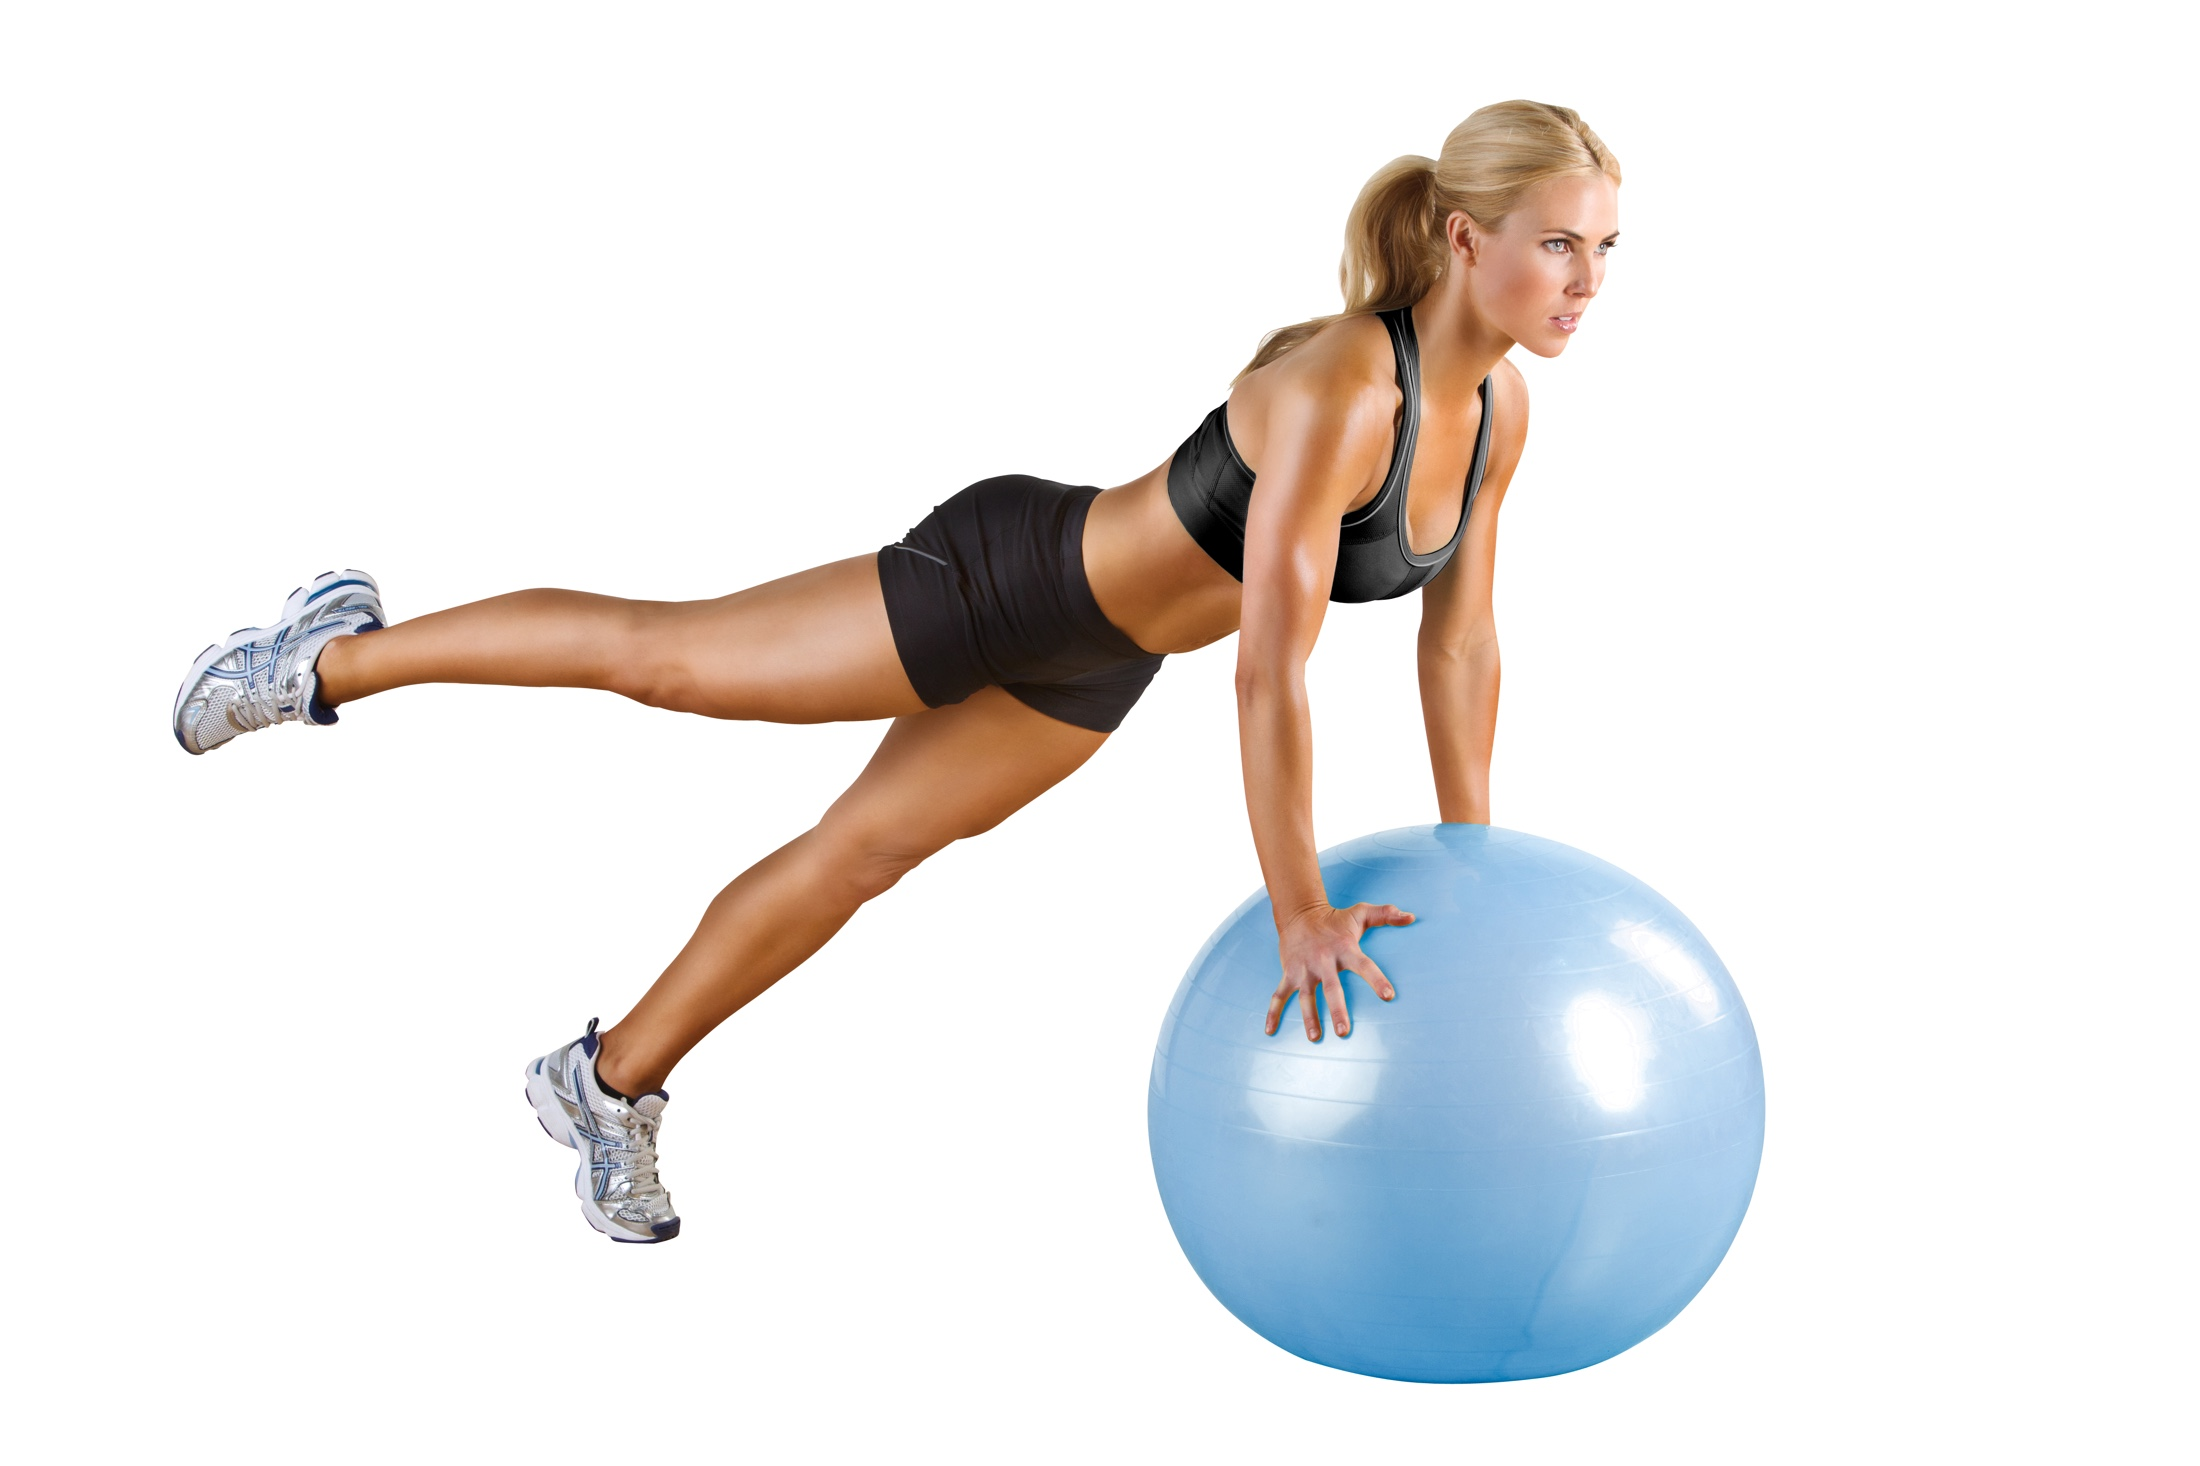 NordicTrack 65 cm Stability Ball gallery image 4